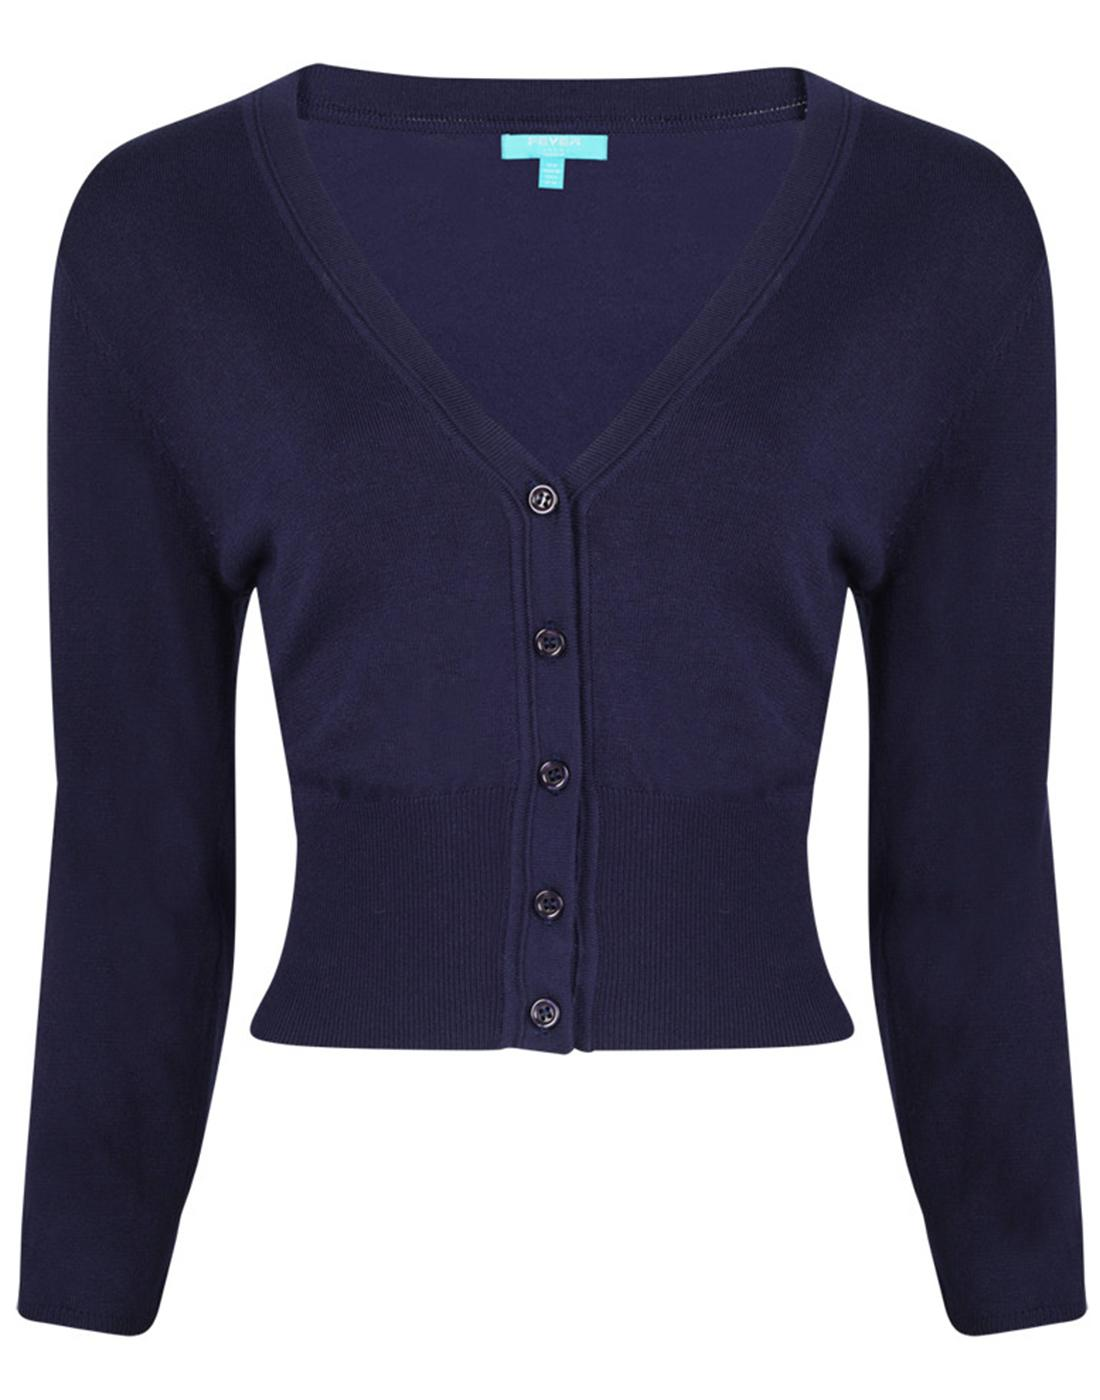 Mariel FEVER Retro Vintage Cropped Cardigan Navy